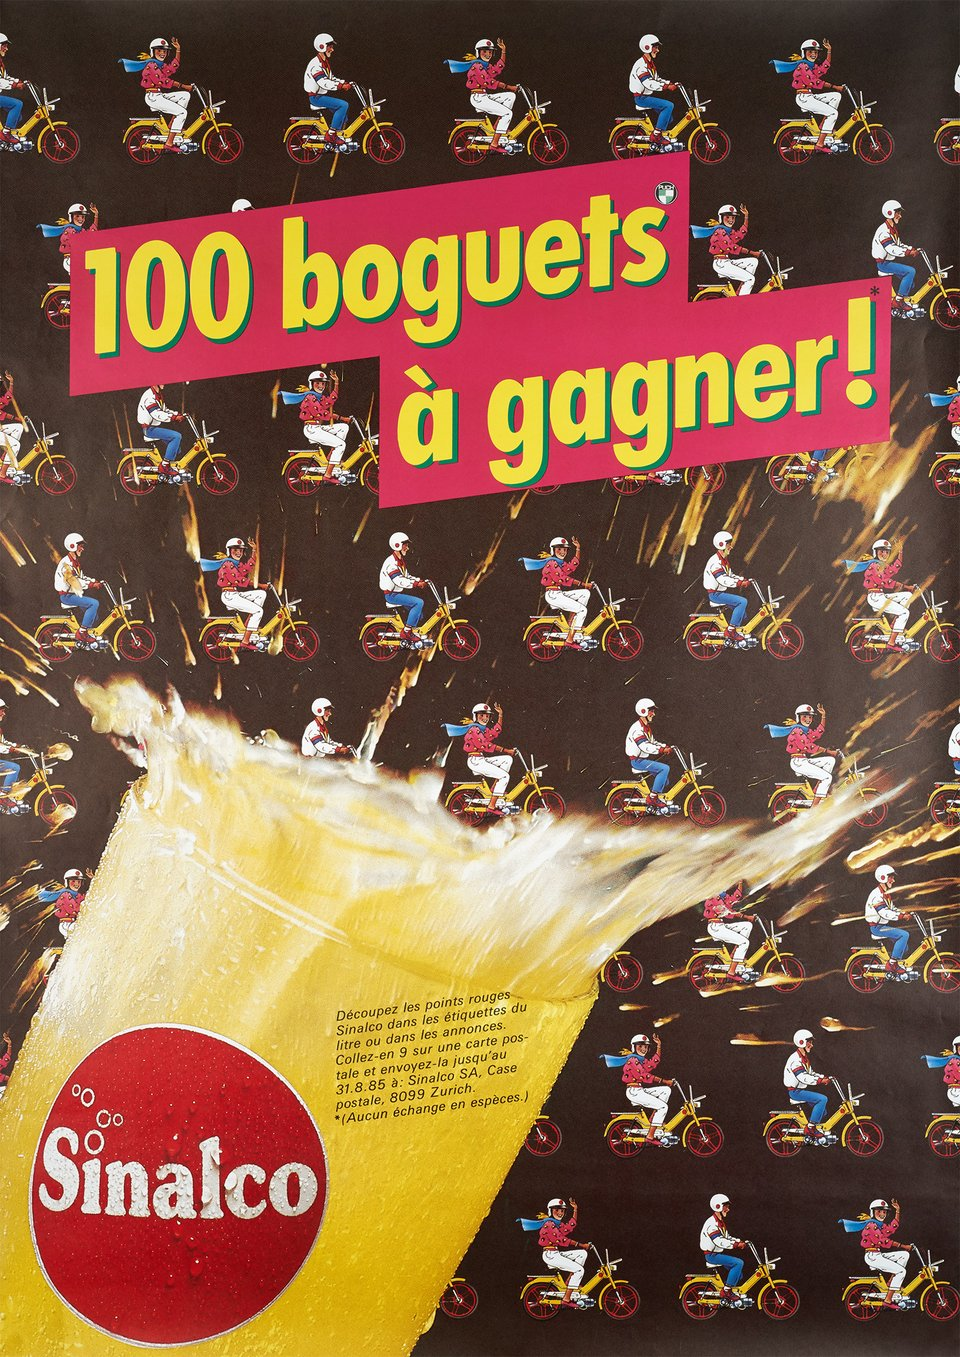 Sinalco, 100 boguets à gagner! – Vintage poster –  ANONYME – 1985